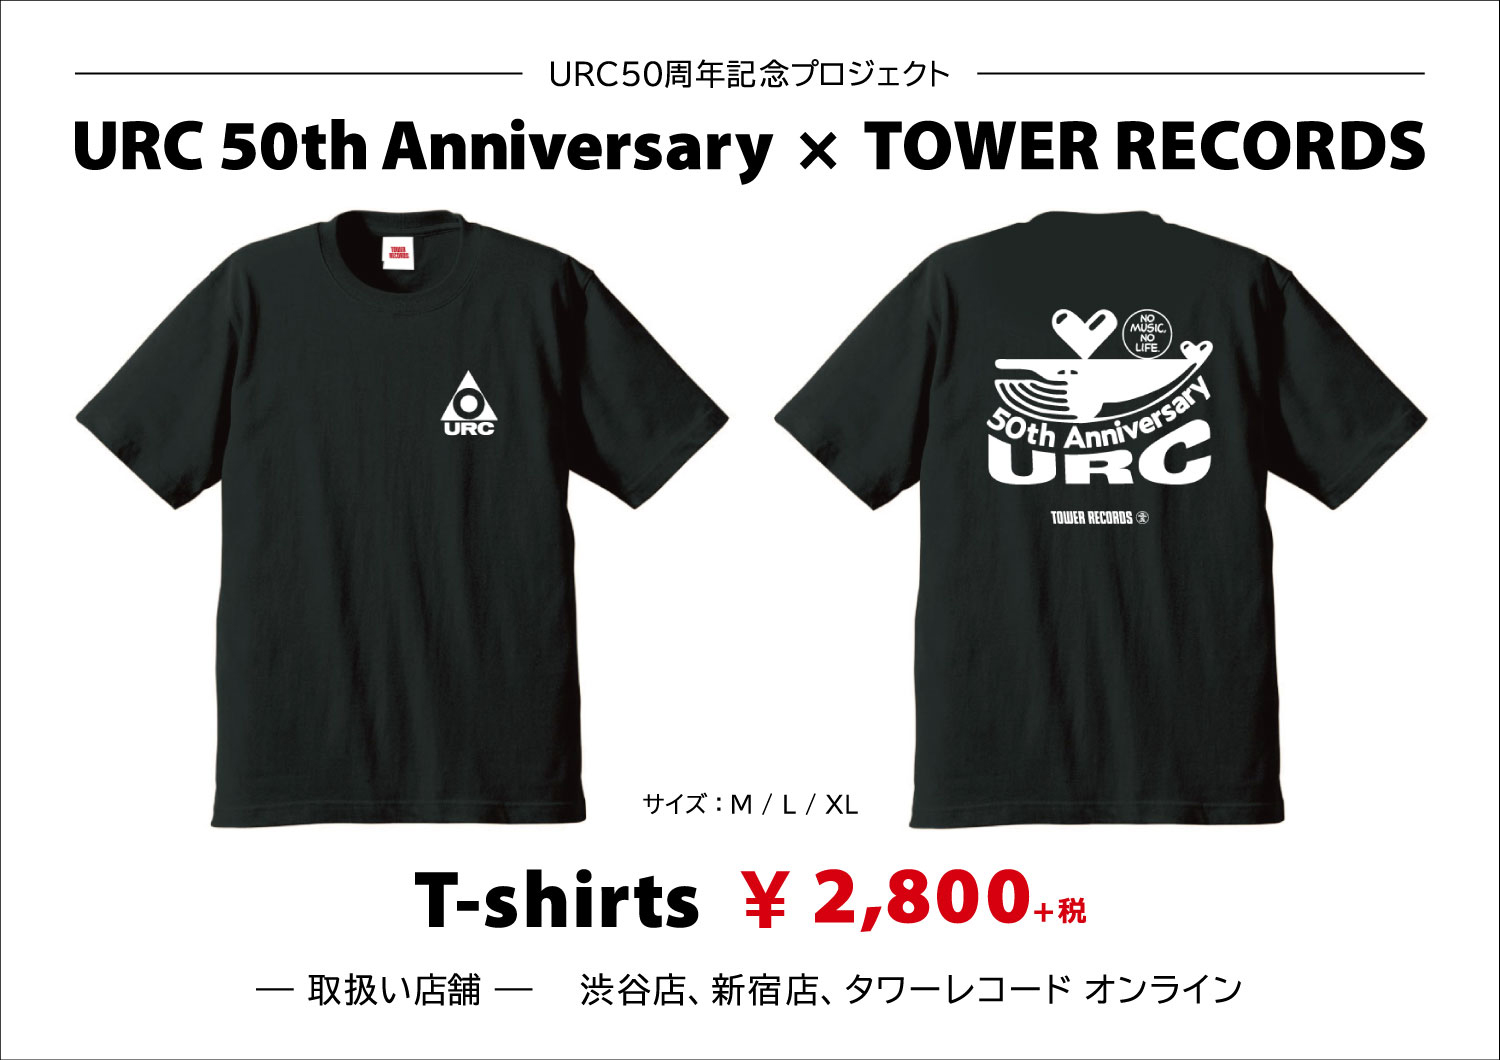 URC 50th Anniversary × TOWER RECORDS コラボT-shirts